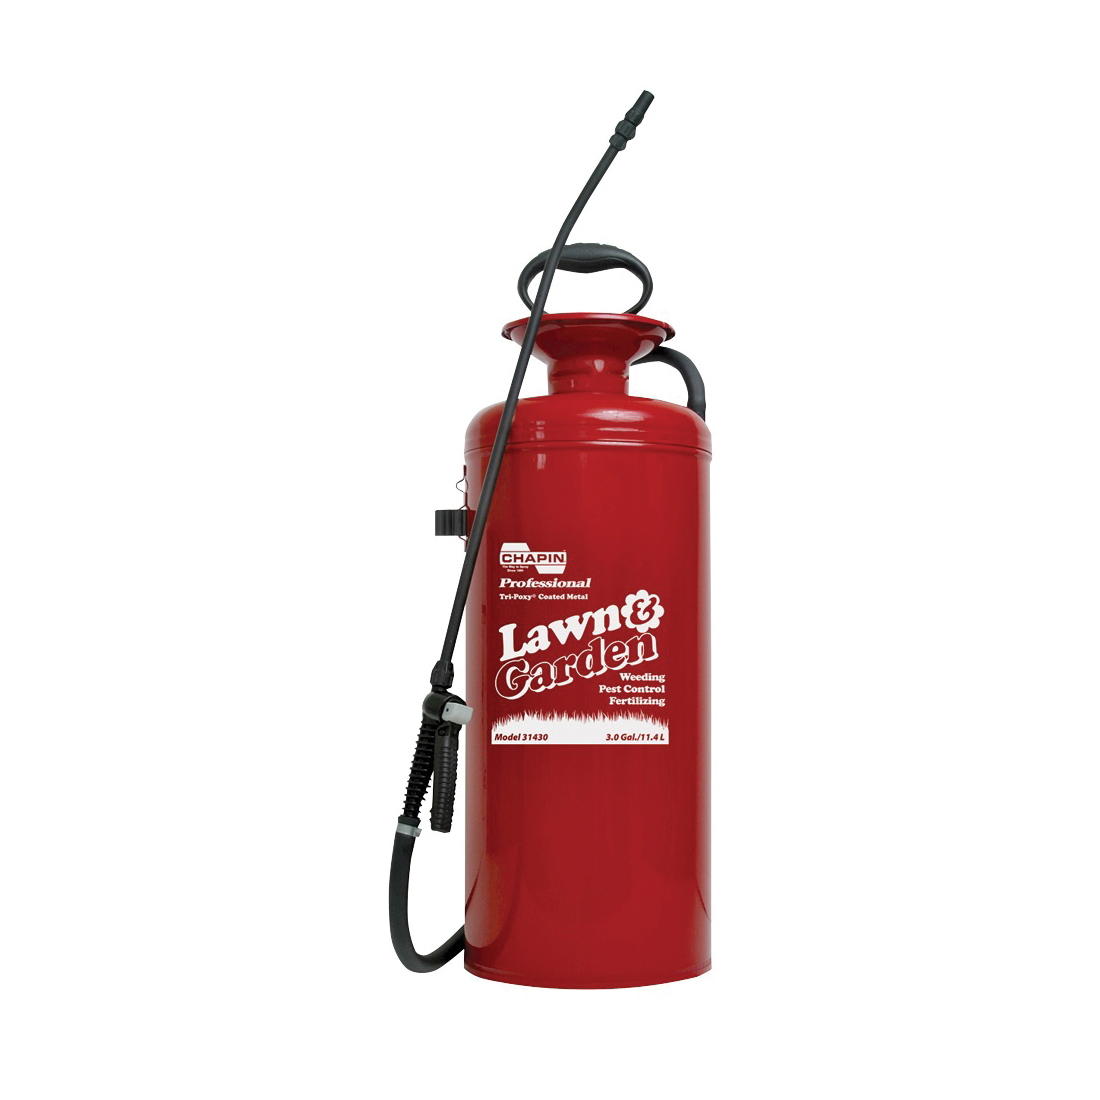 Picture of CHAPIN Lawn & Garden Series 31430 Compression Sprayer, 3 gal Tank, Steel Tank, 42 in L Hose